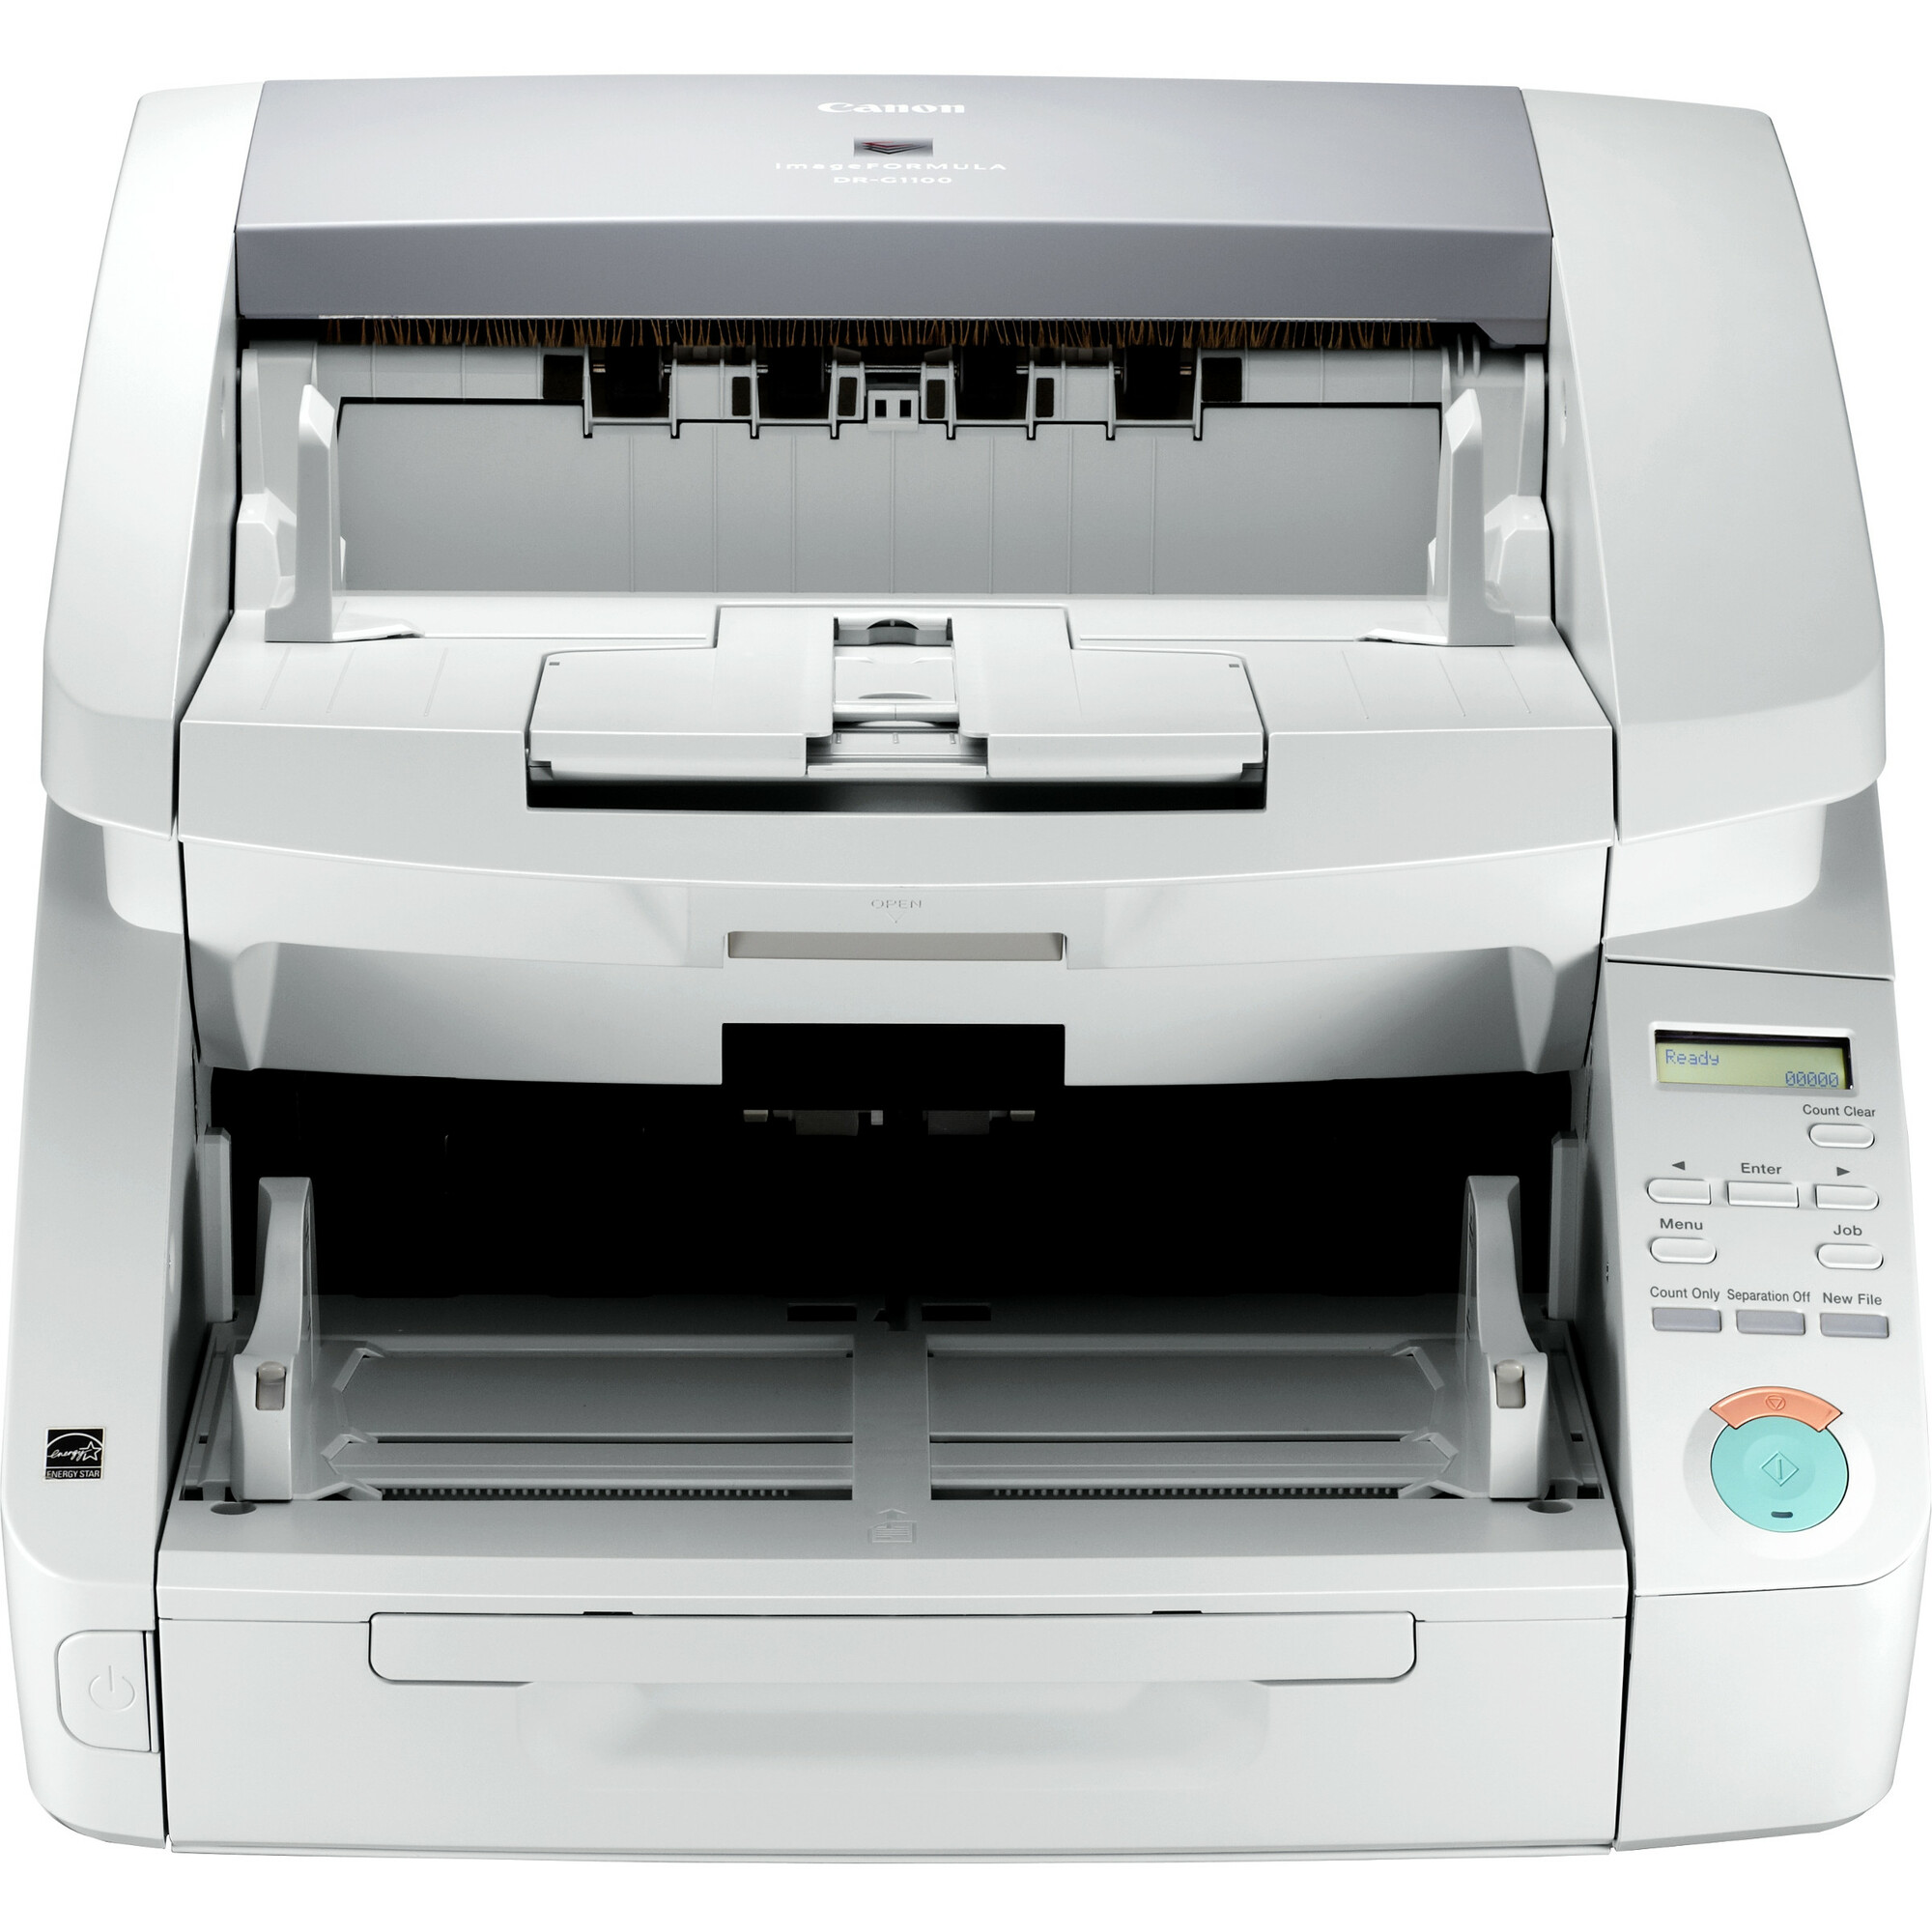 Canon DR-G1100 Sheetfed Scanner - 600 dpi Optical